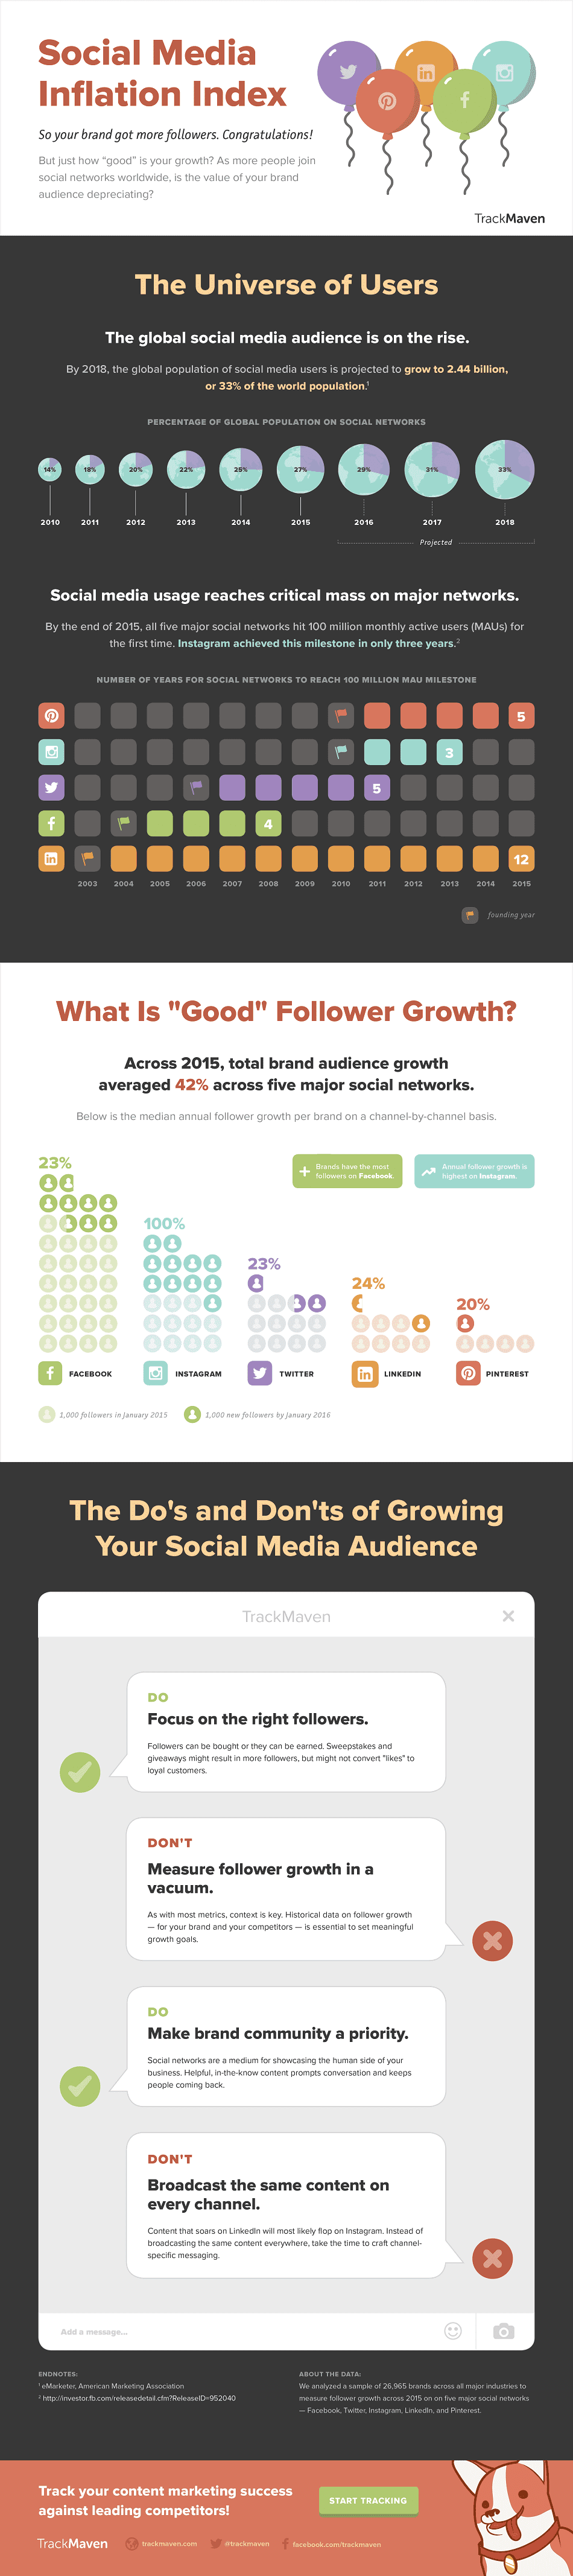 The Dos And Don'ts Of Growing Your Social Media Audience [INFOGRAPHIC]